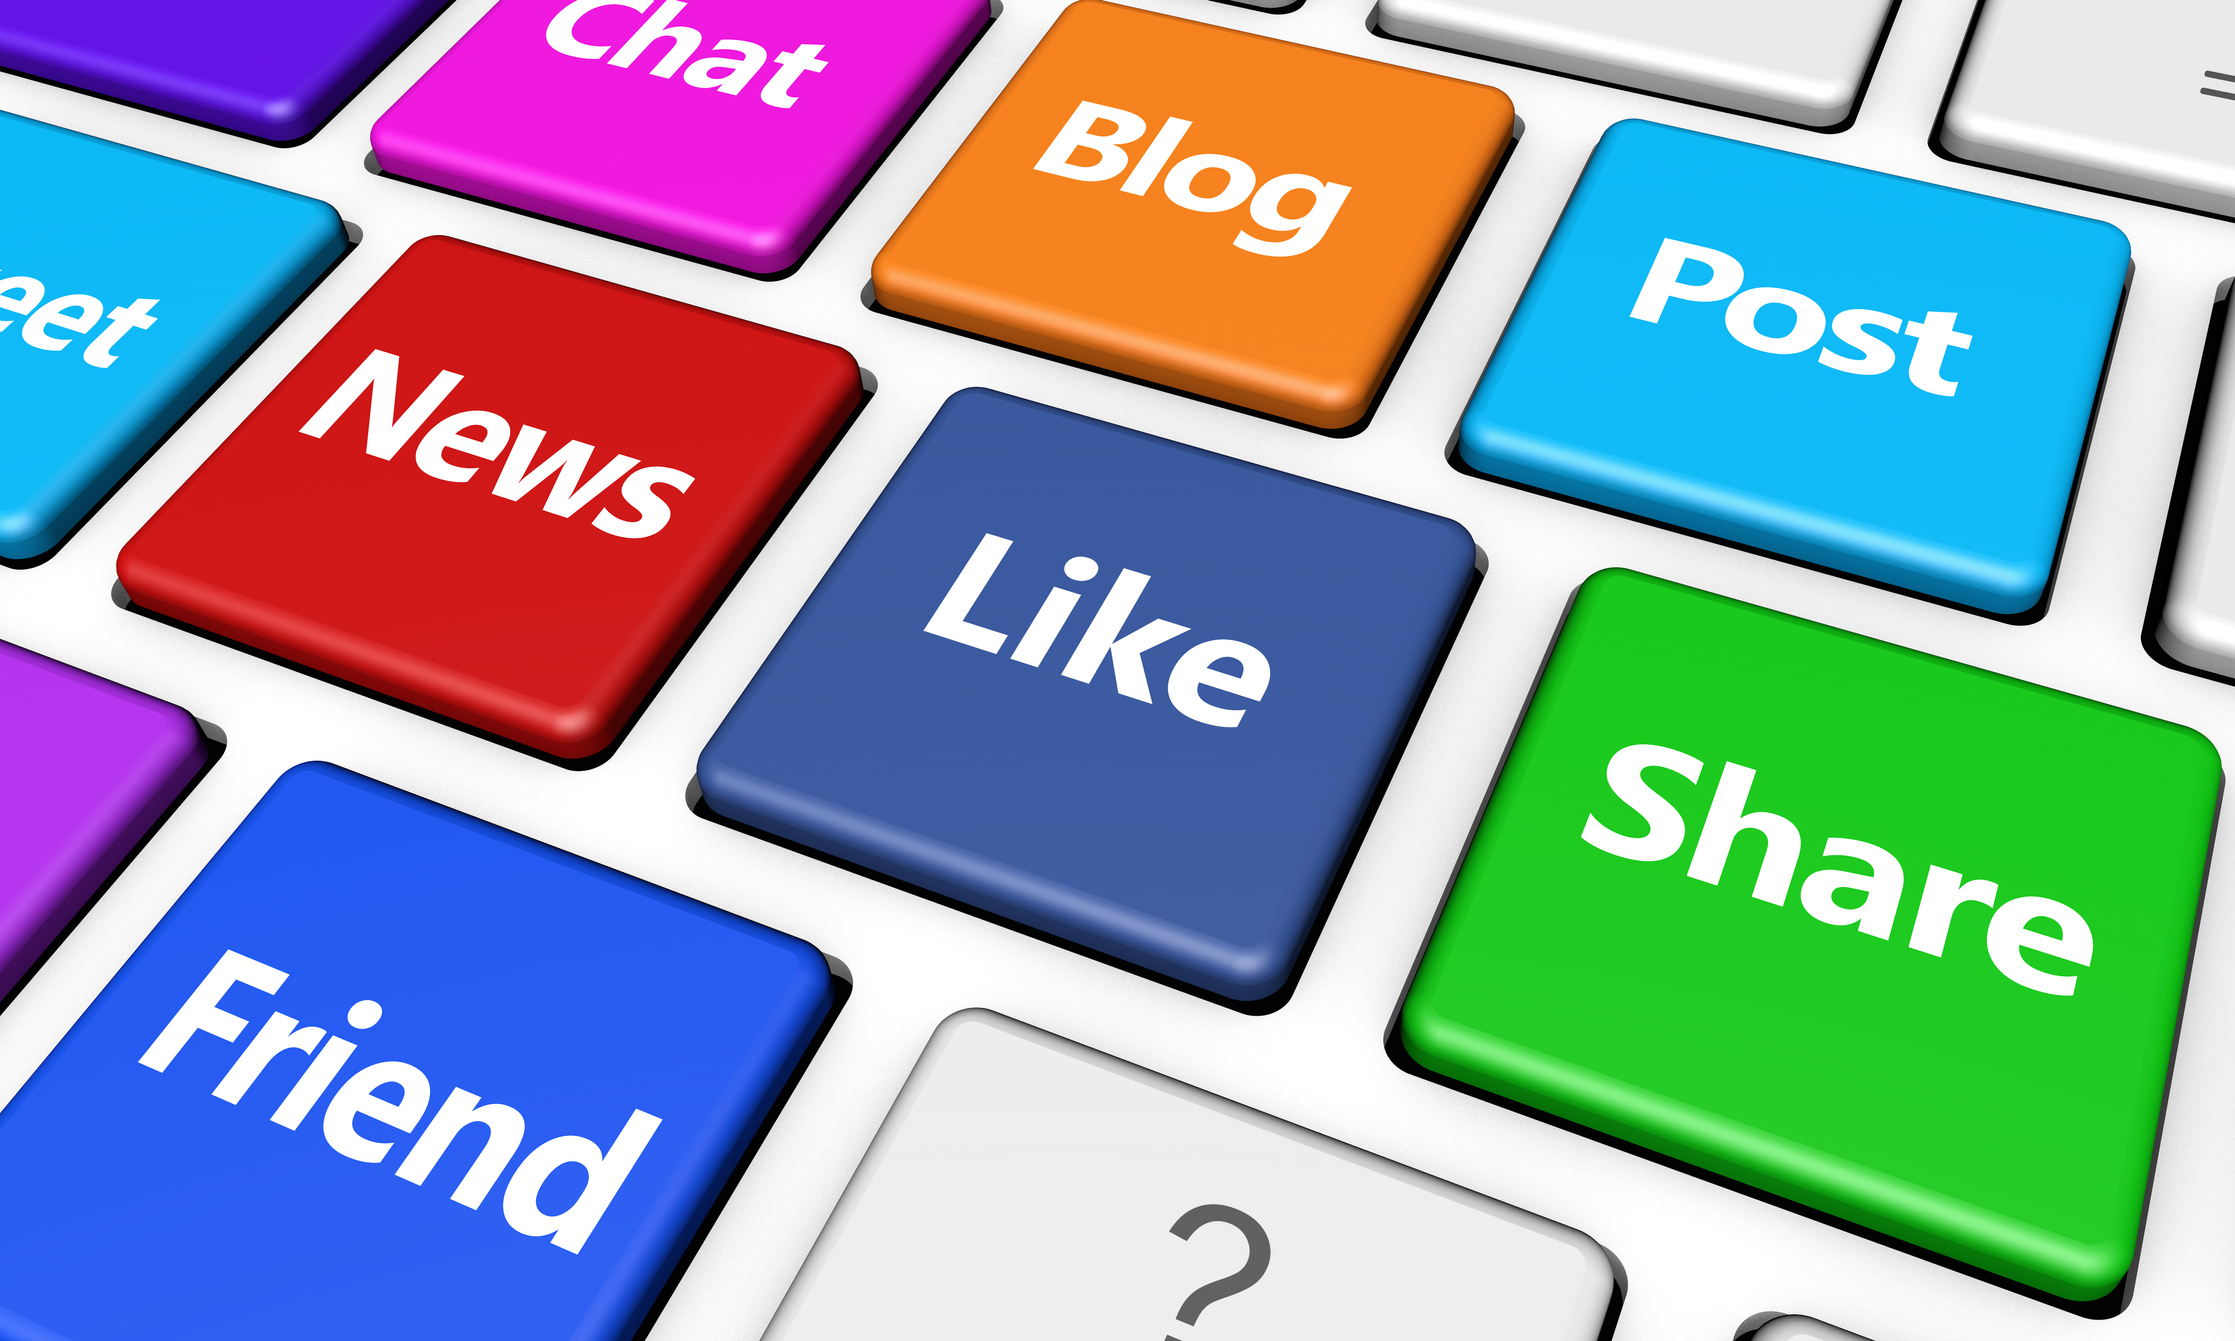 social media keyboard blog like share - HealthNewsReview org